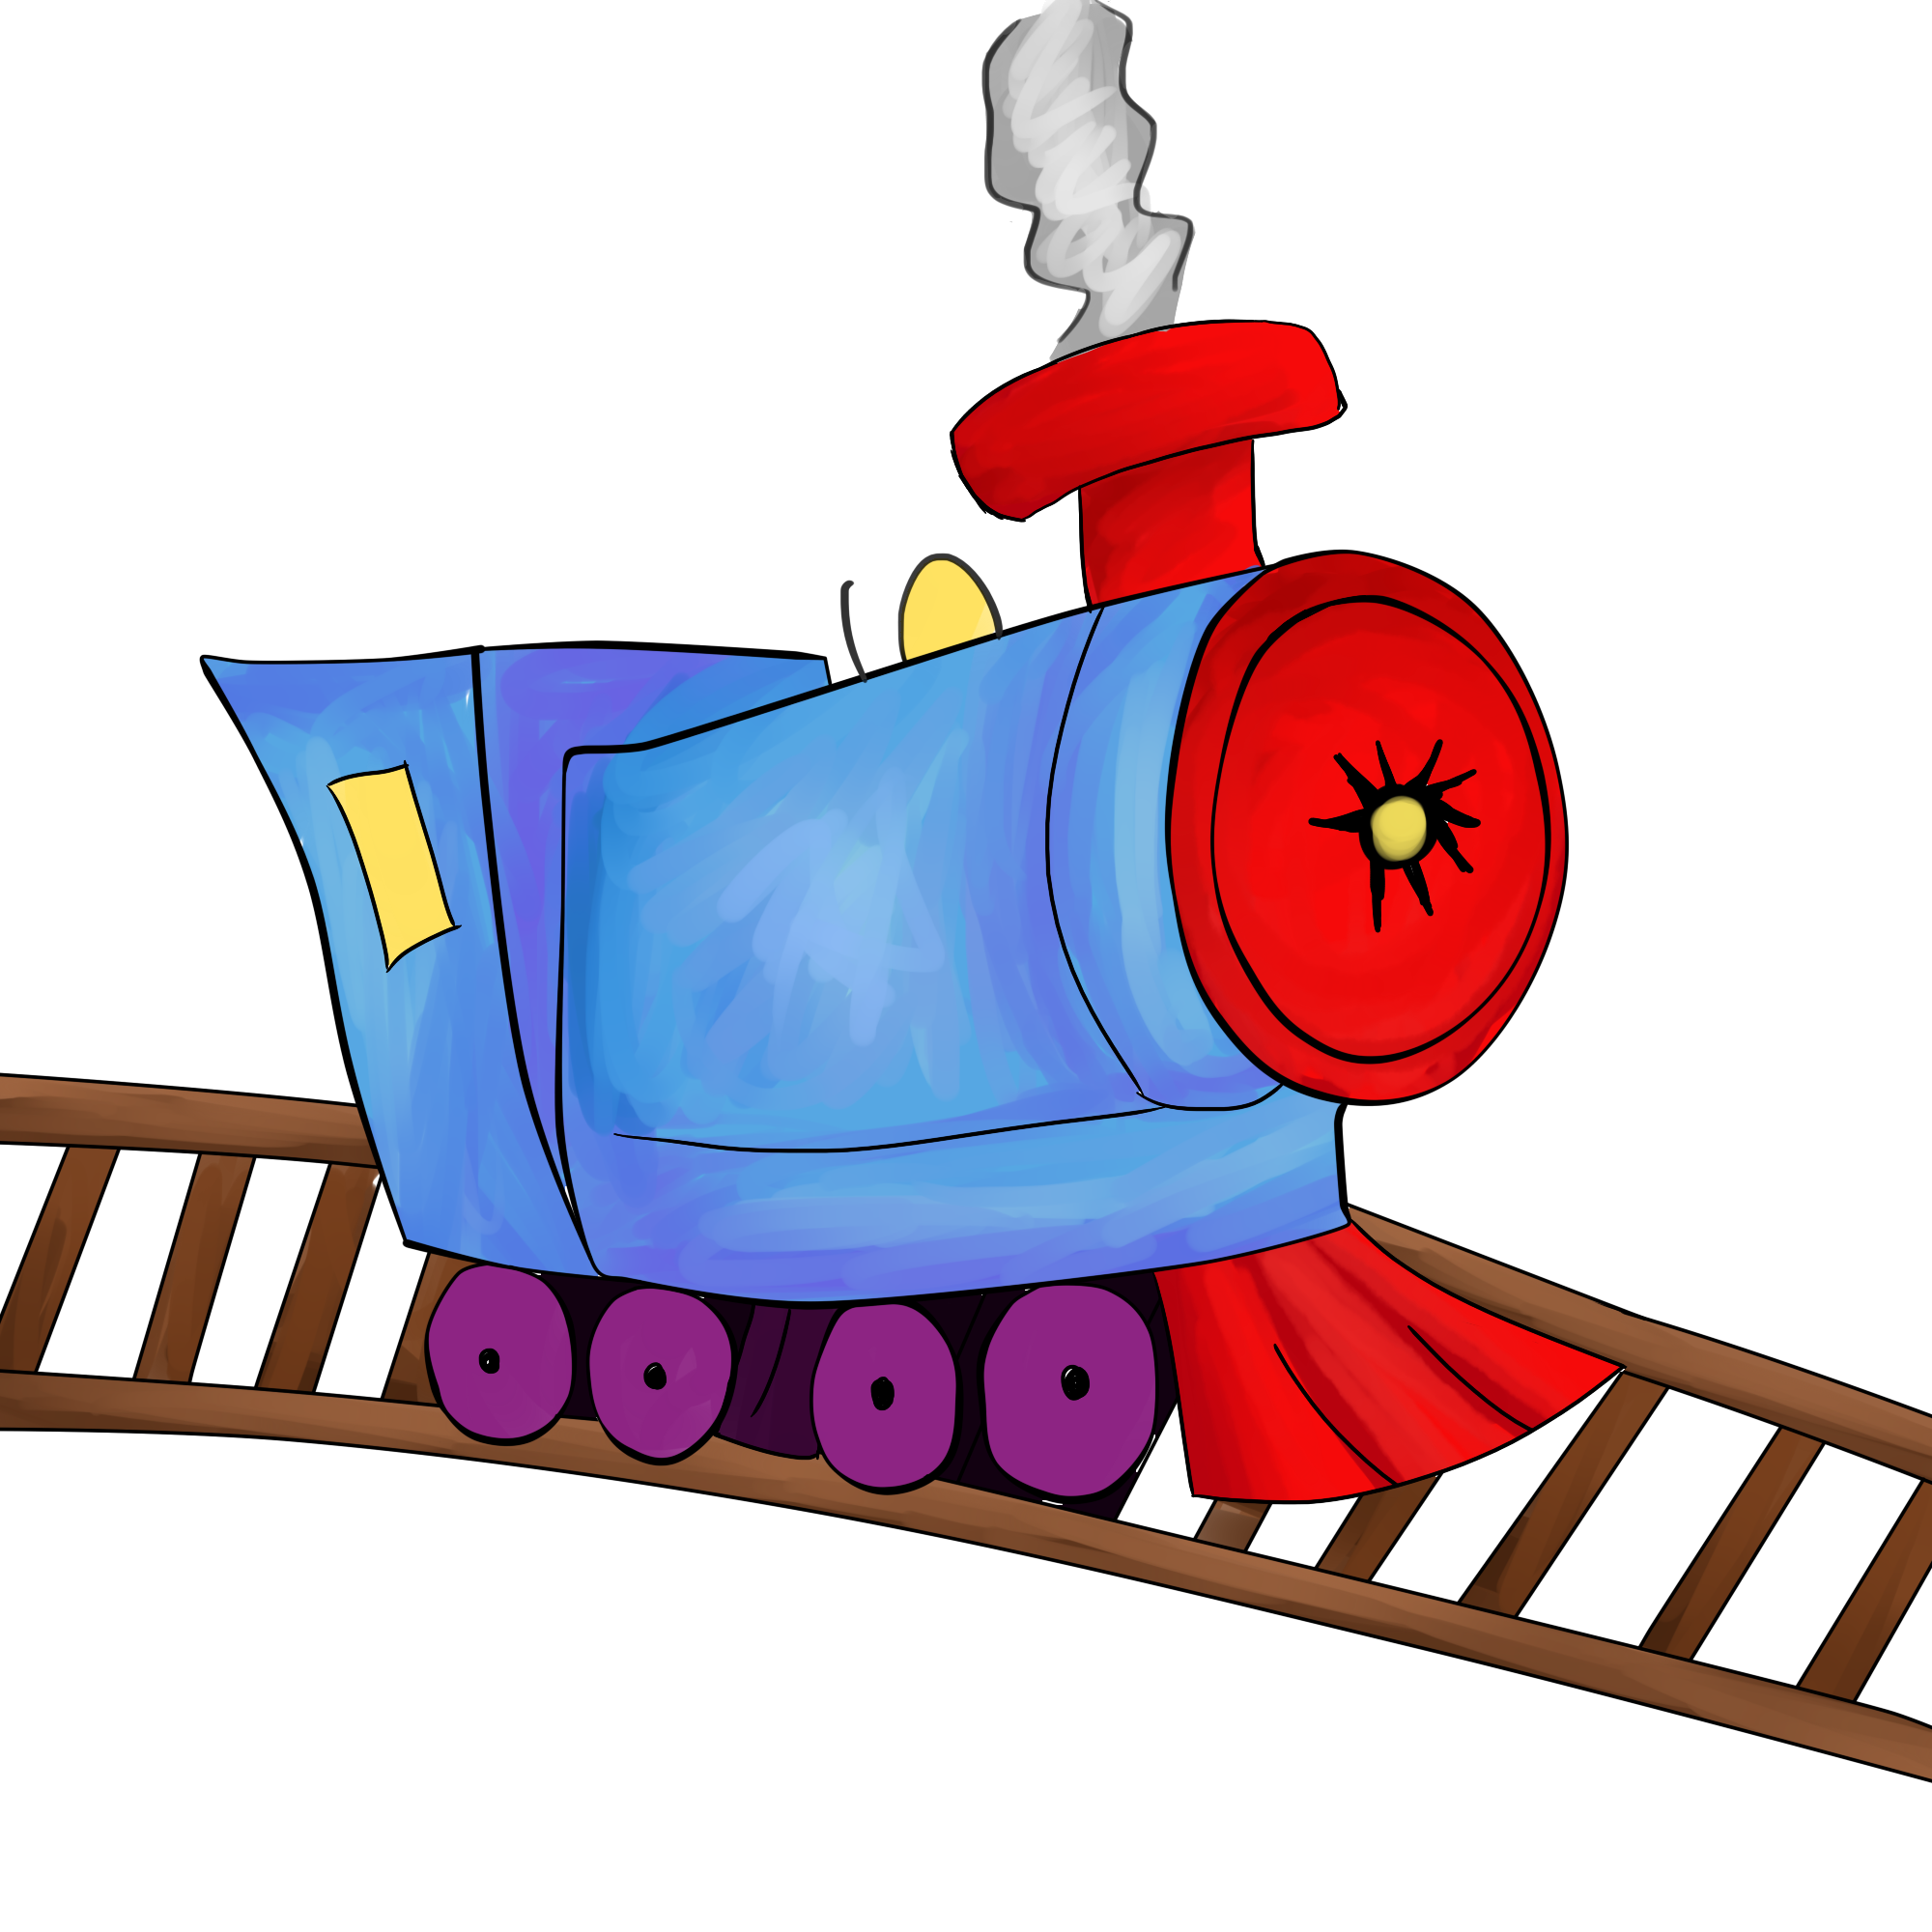 2000x2000 Train Free To Use Clip Art 5